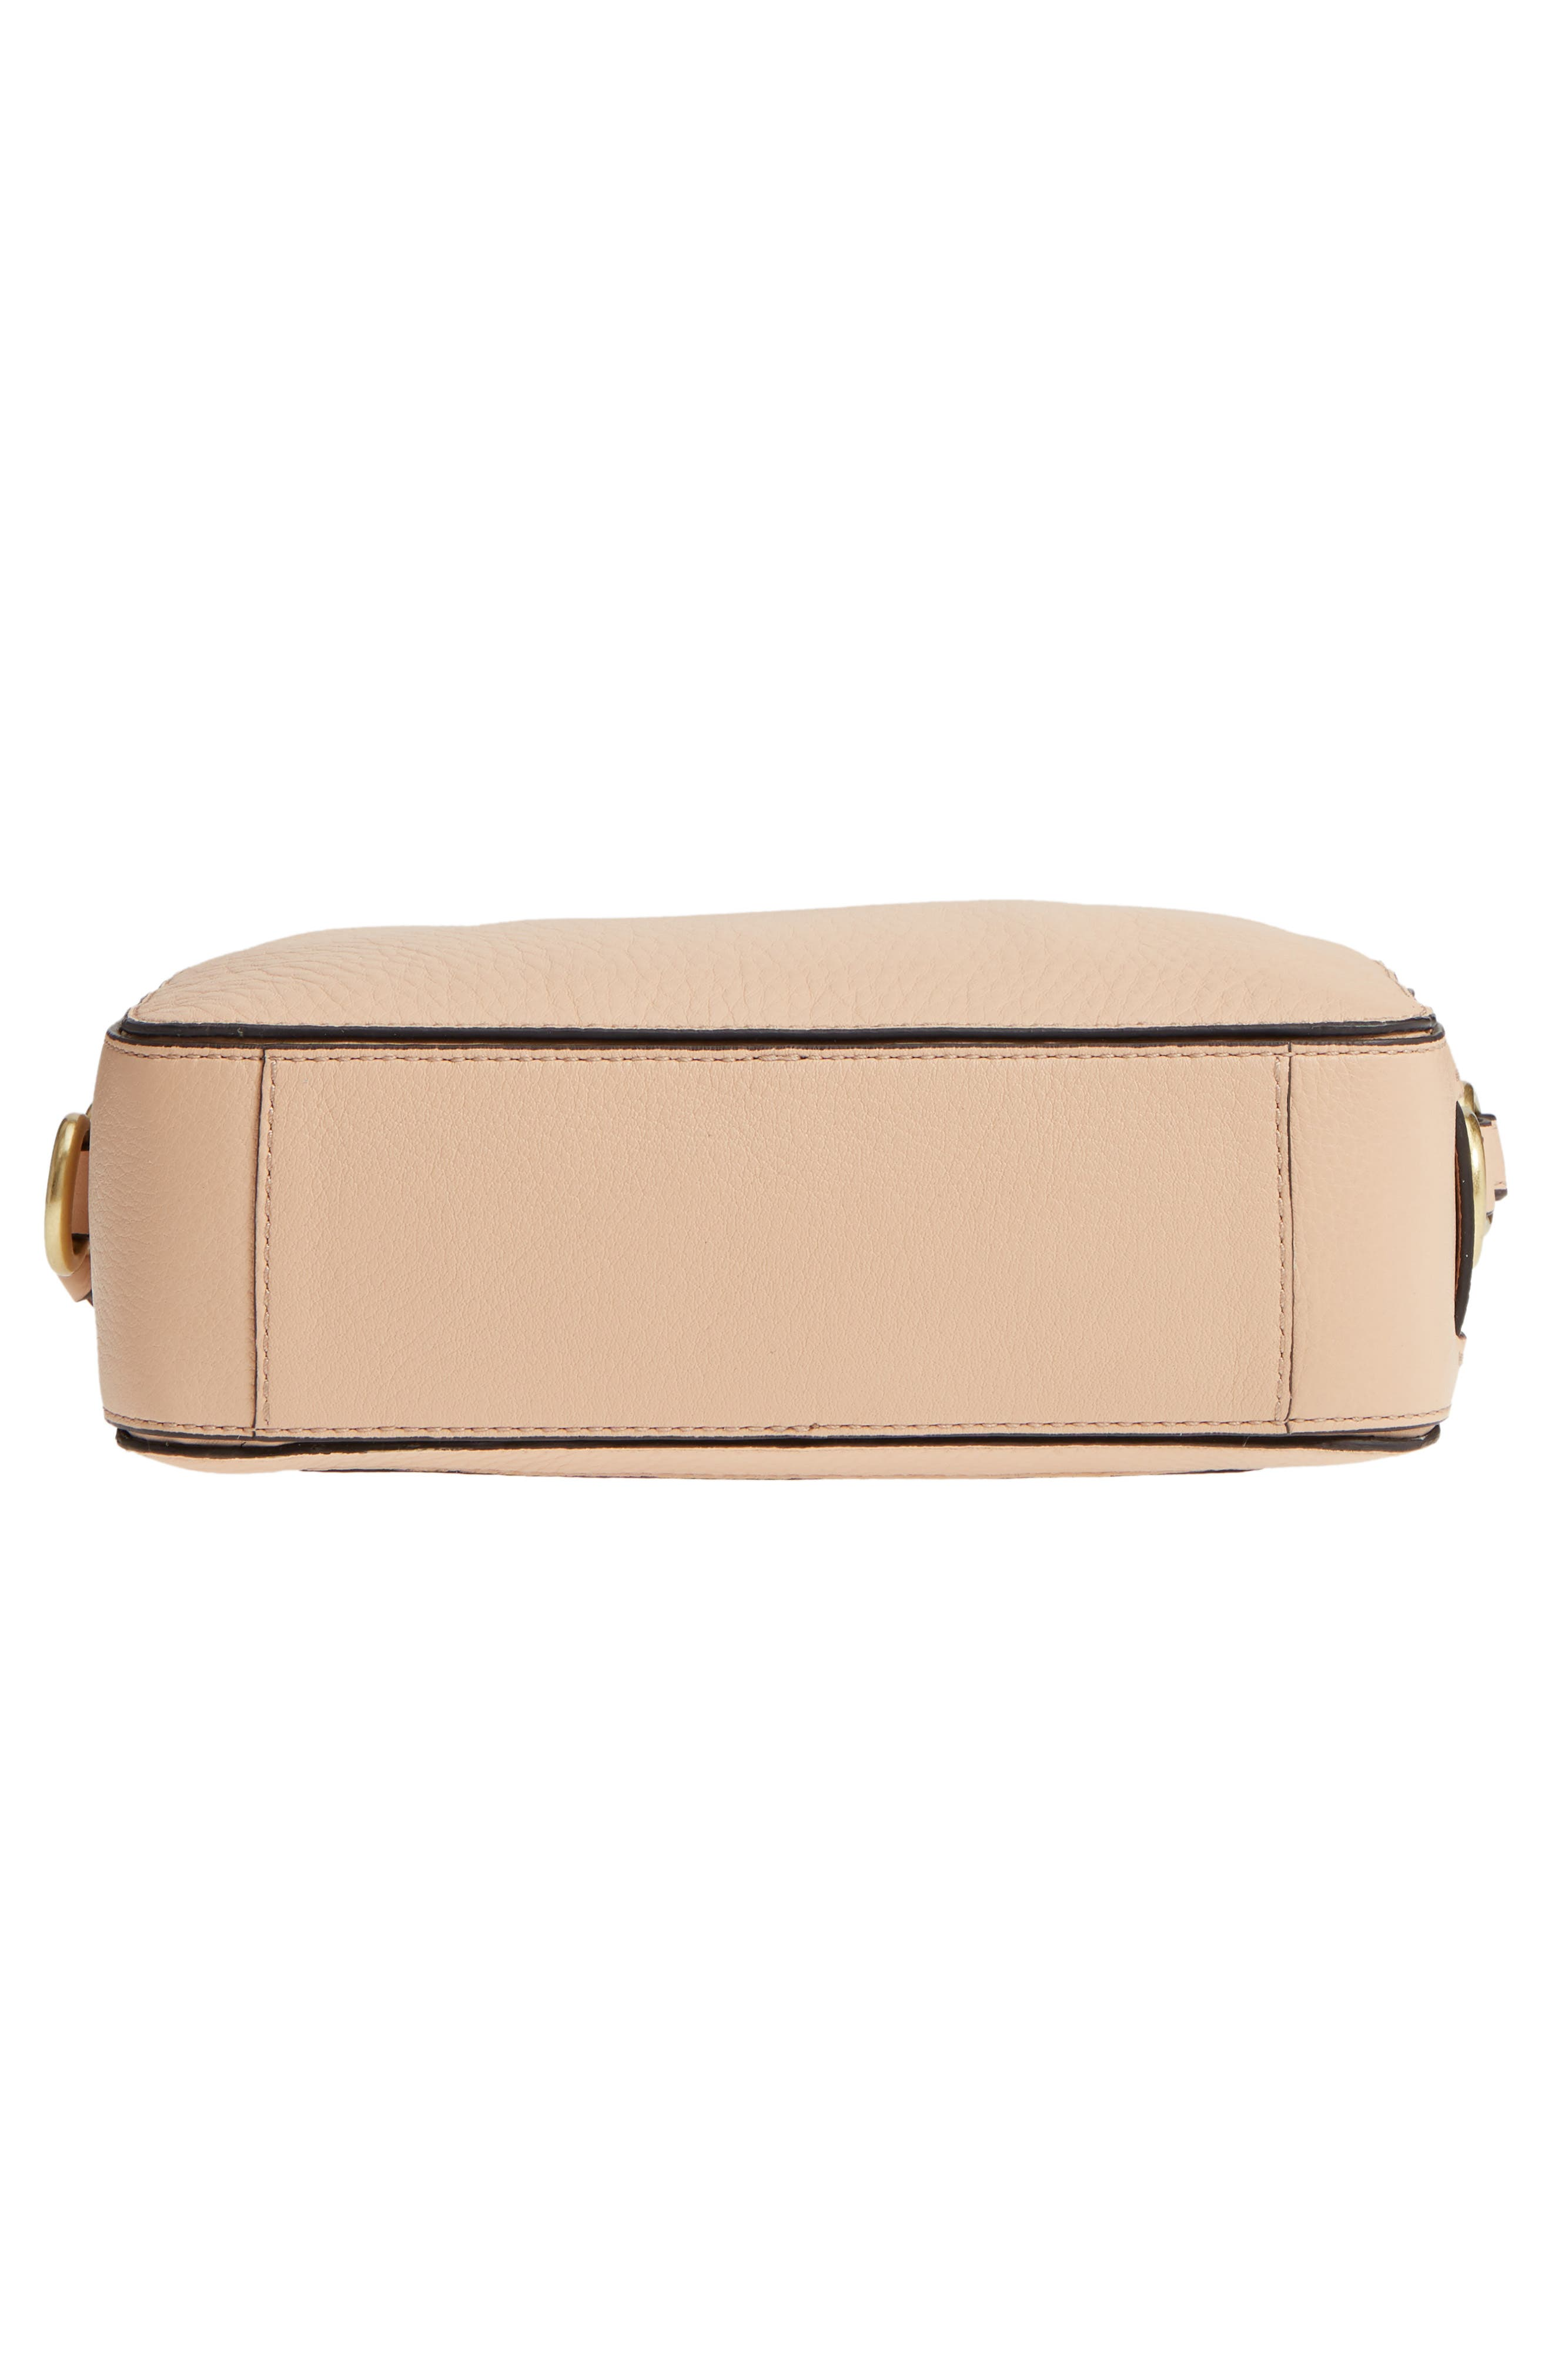 Cassidy RFID Pebbled Leather Camera Bag,                             Alternate thumbnail 23, color,